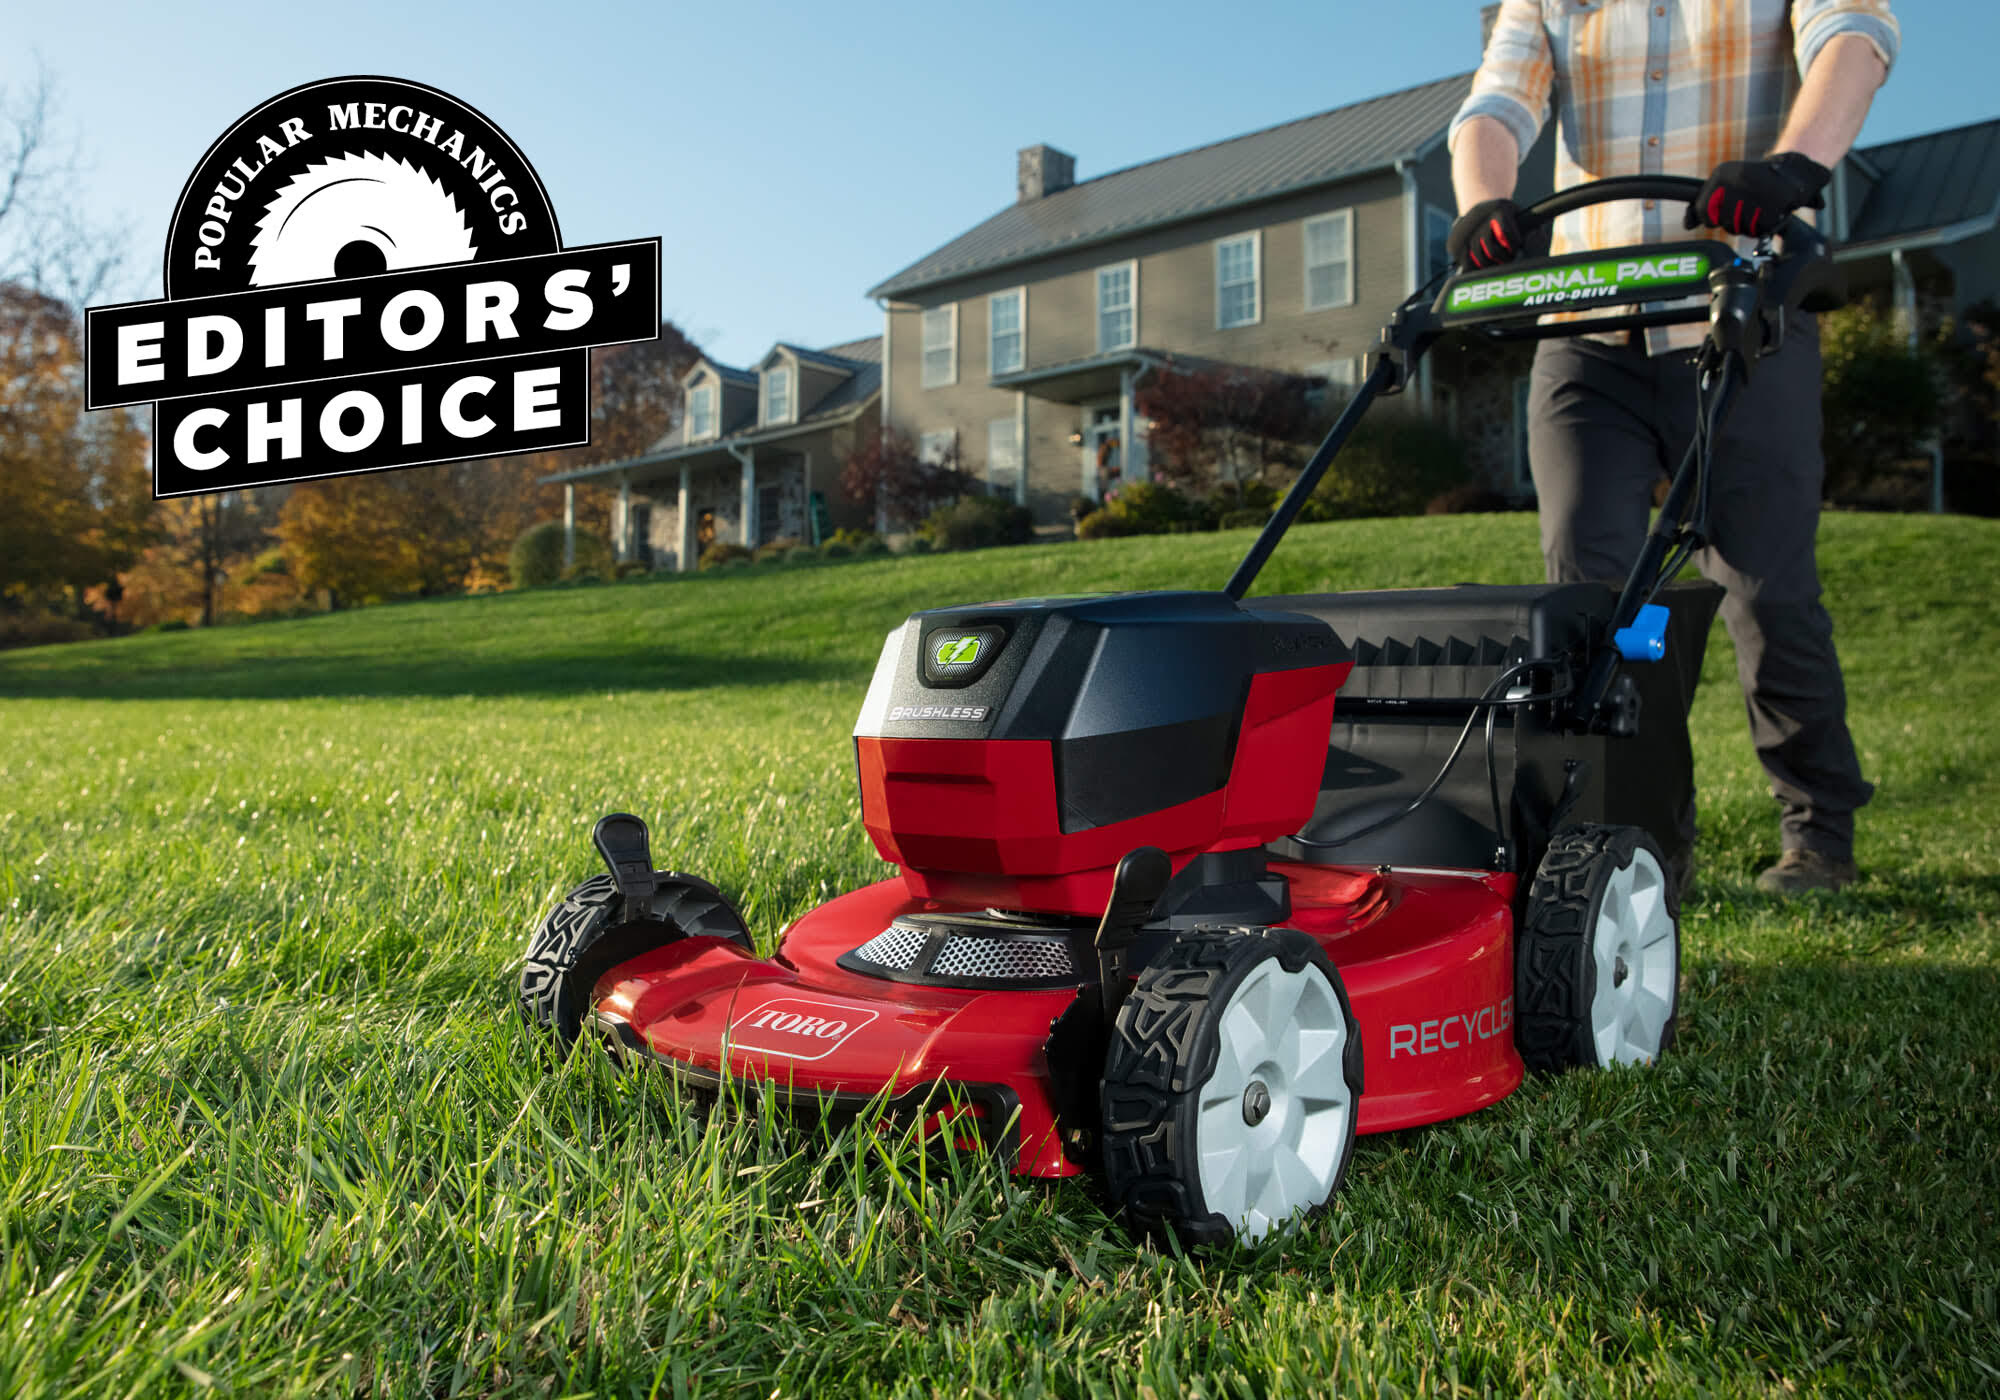 Toro's 60V Mower Won the Popular Mechanics Editors Choice